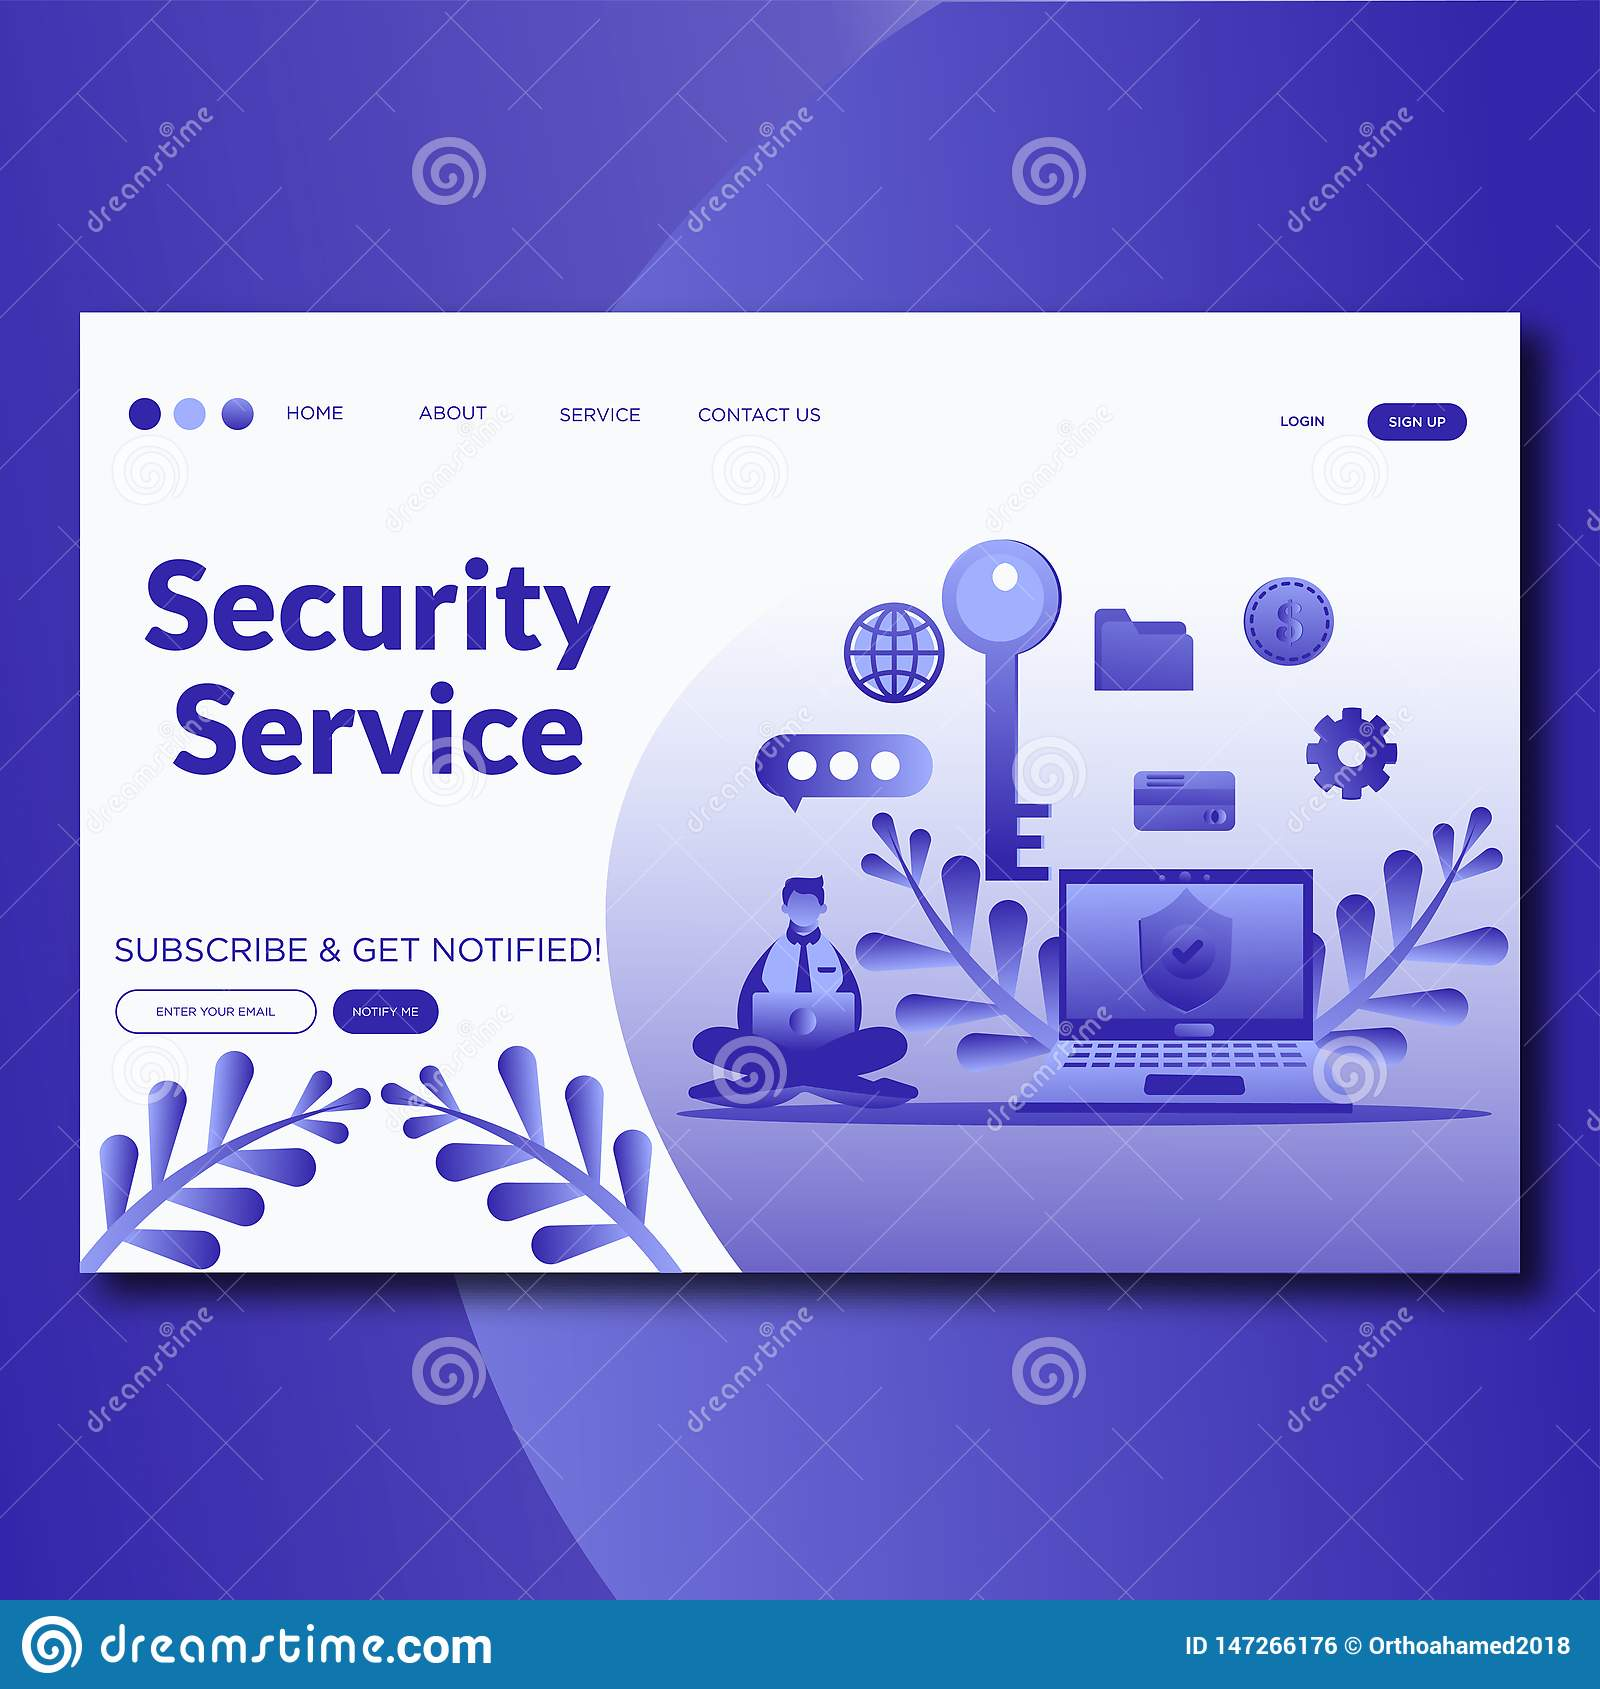 Security Service- Online security services landing page website vector template